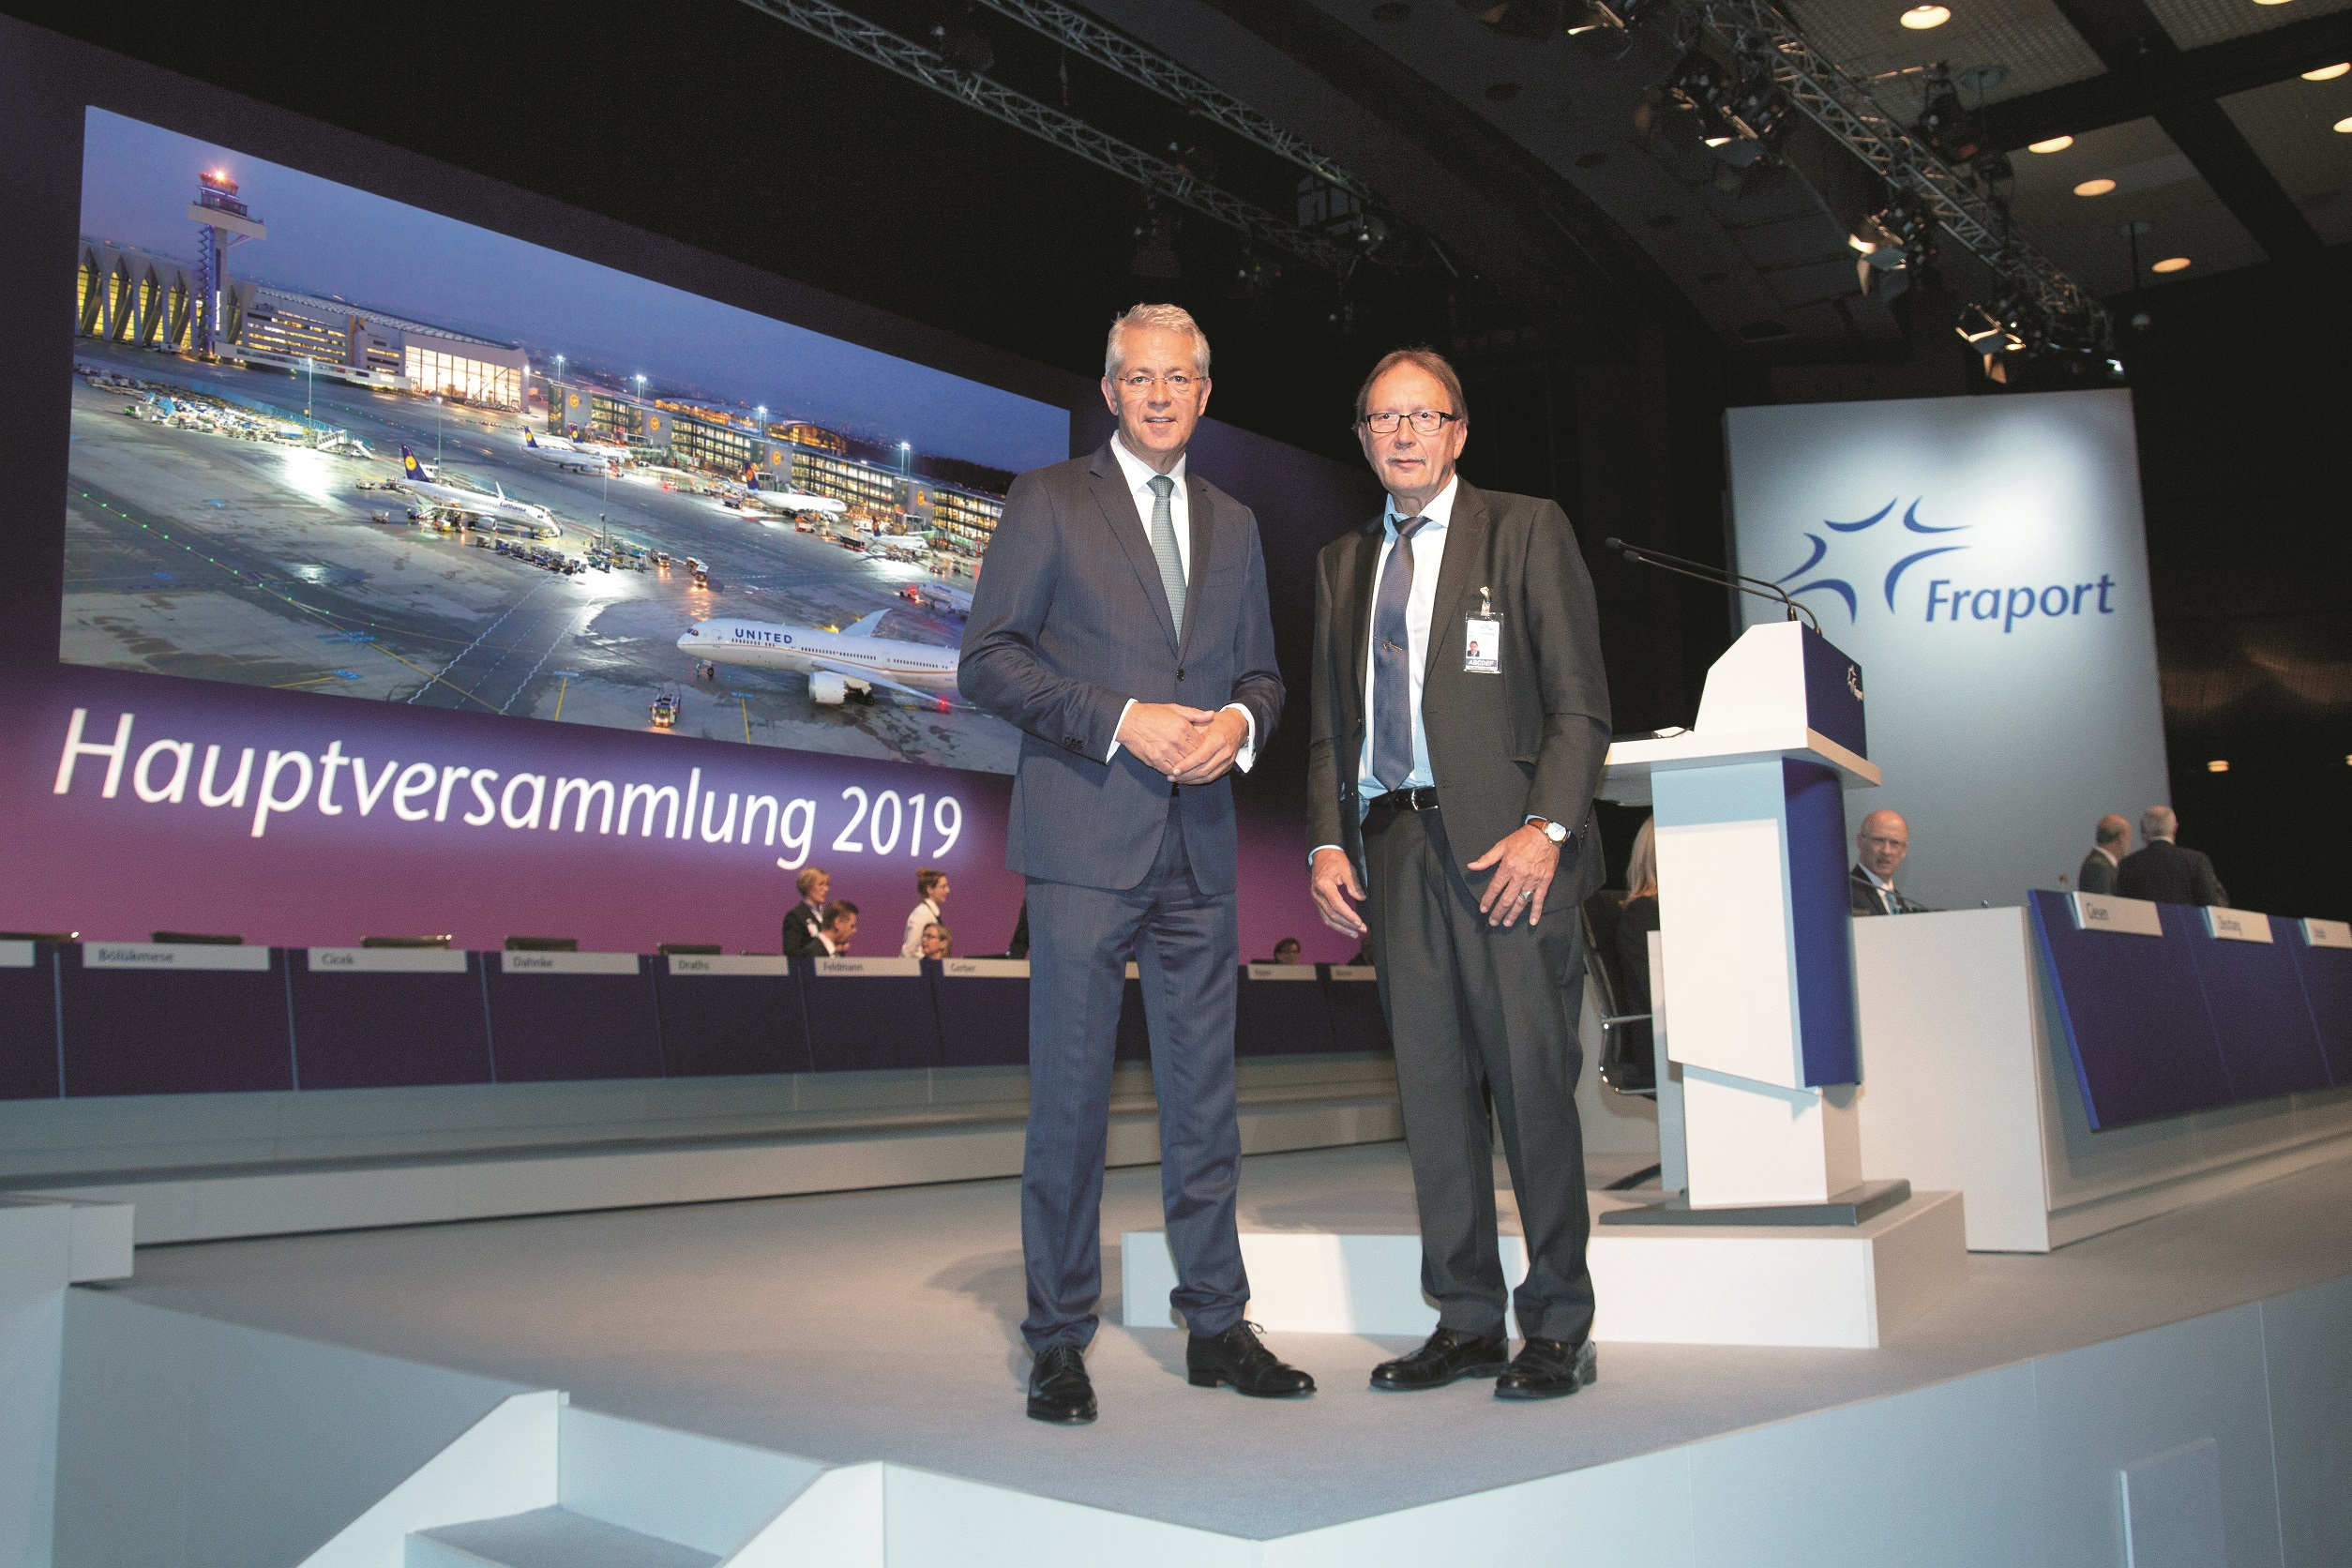 Fraport will hold virtual-only Annual General Meeting on May 26